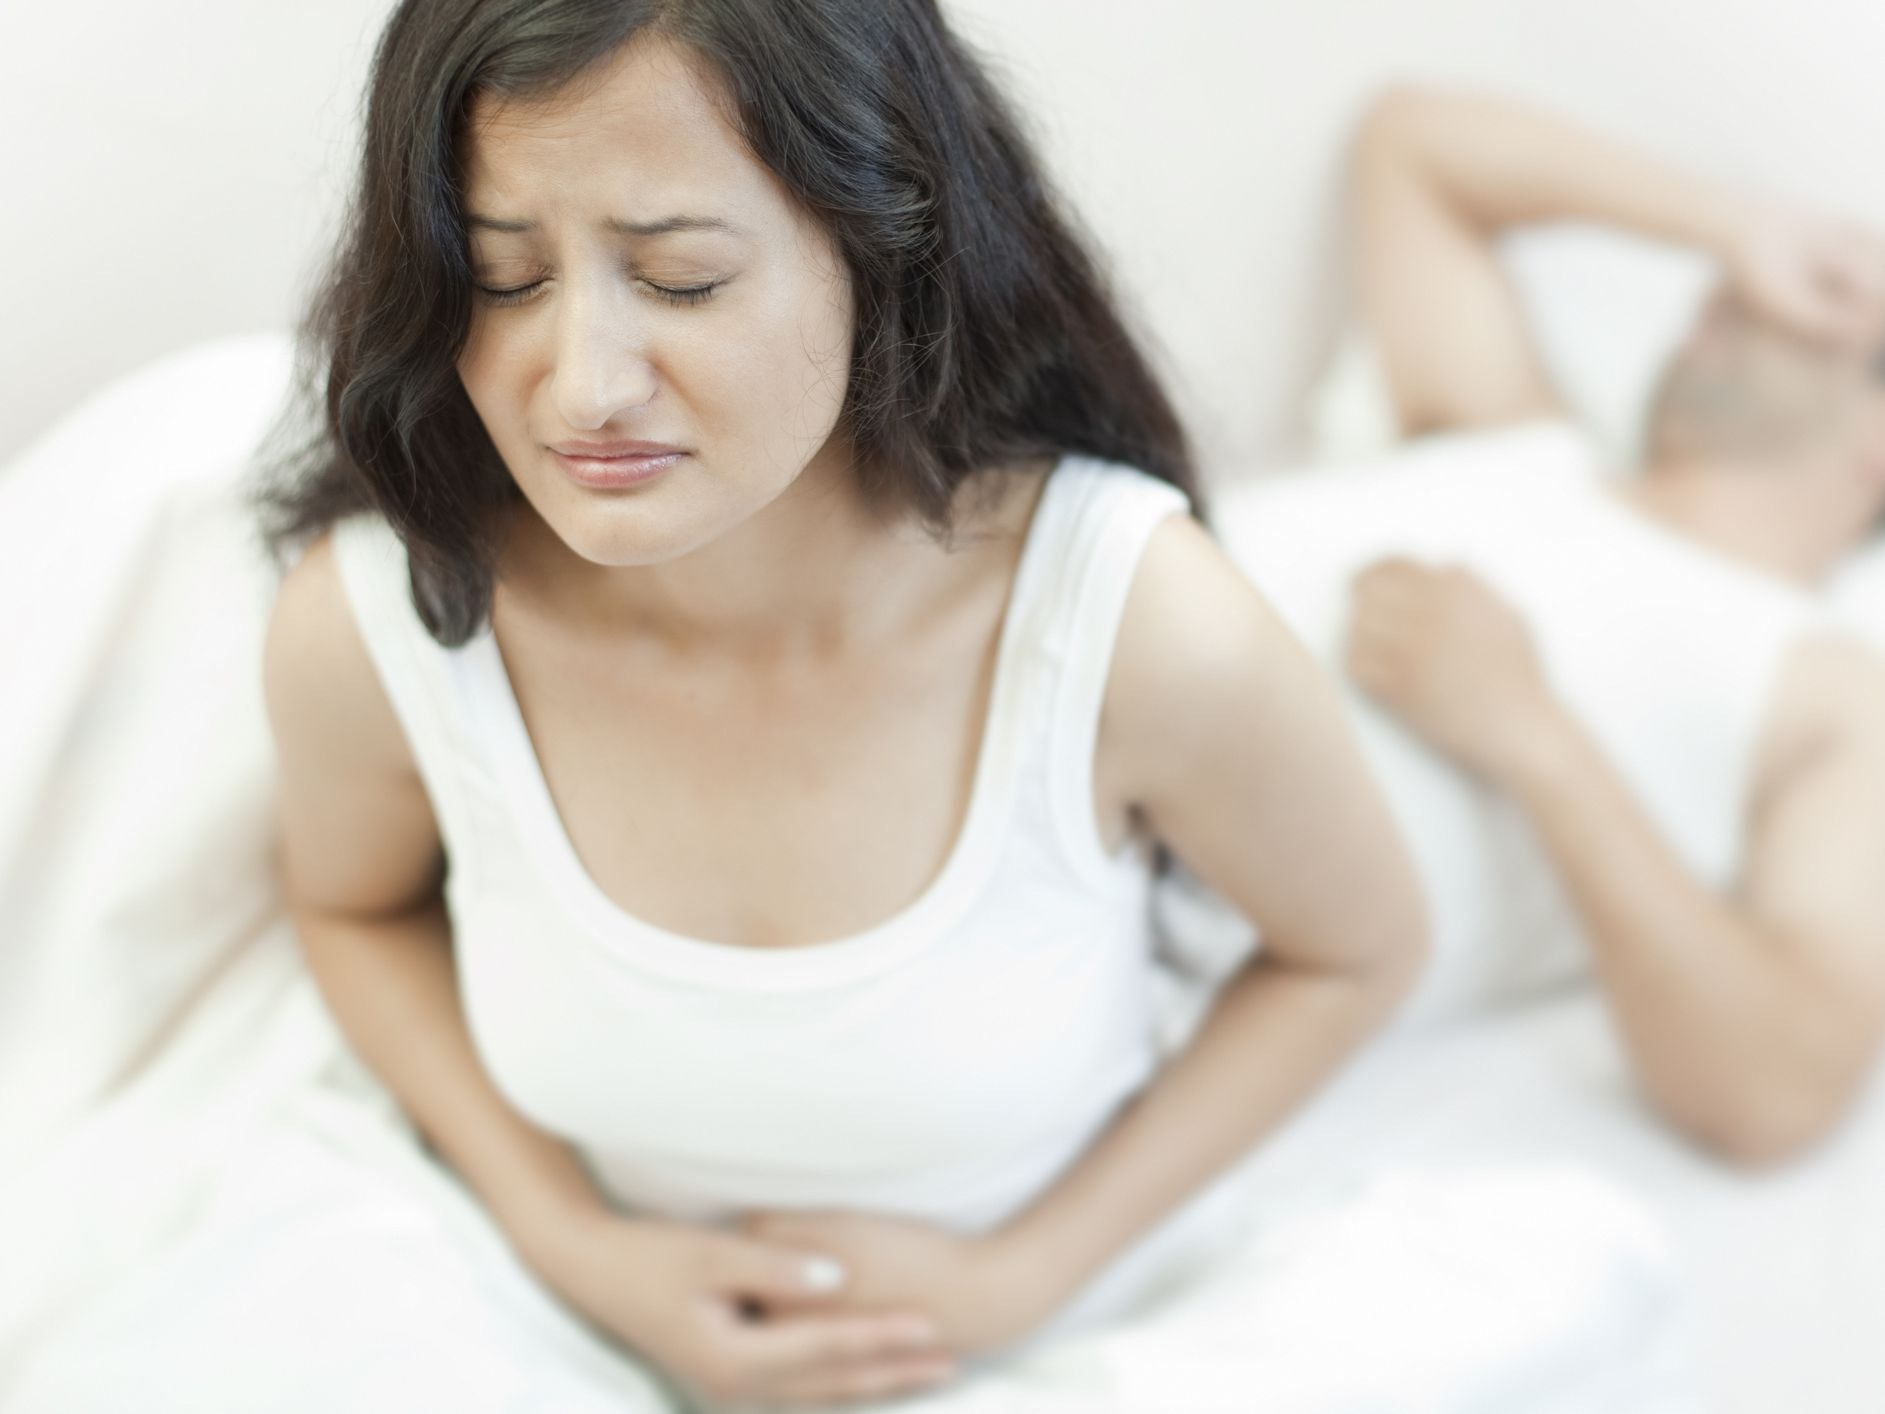 Travelers' Top 7 India Health Issues